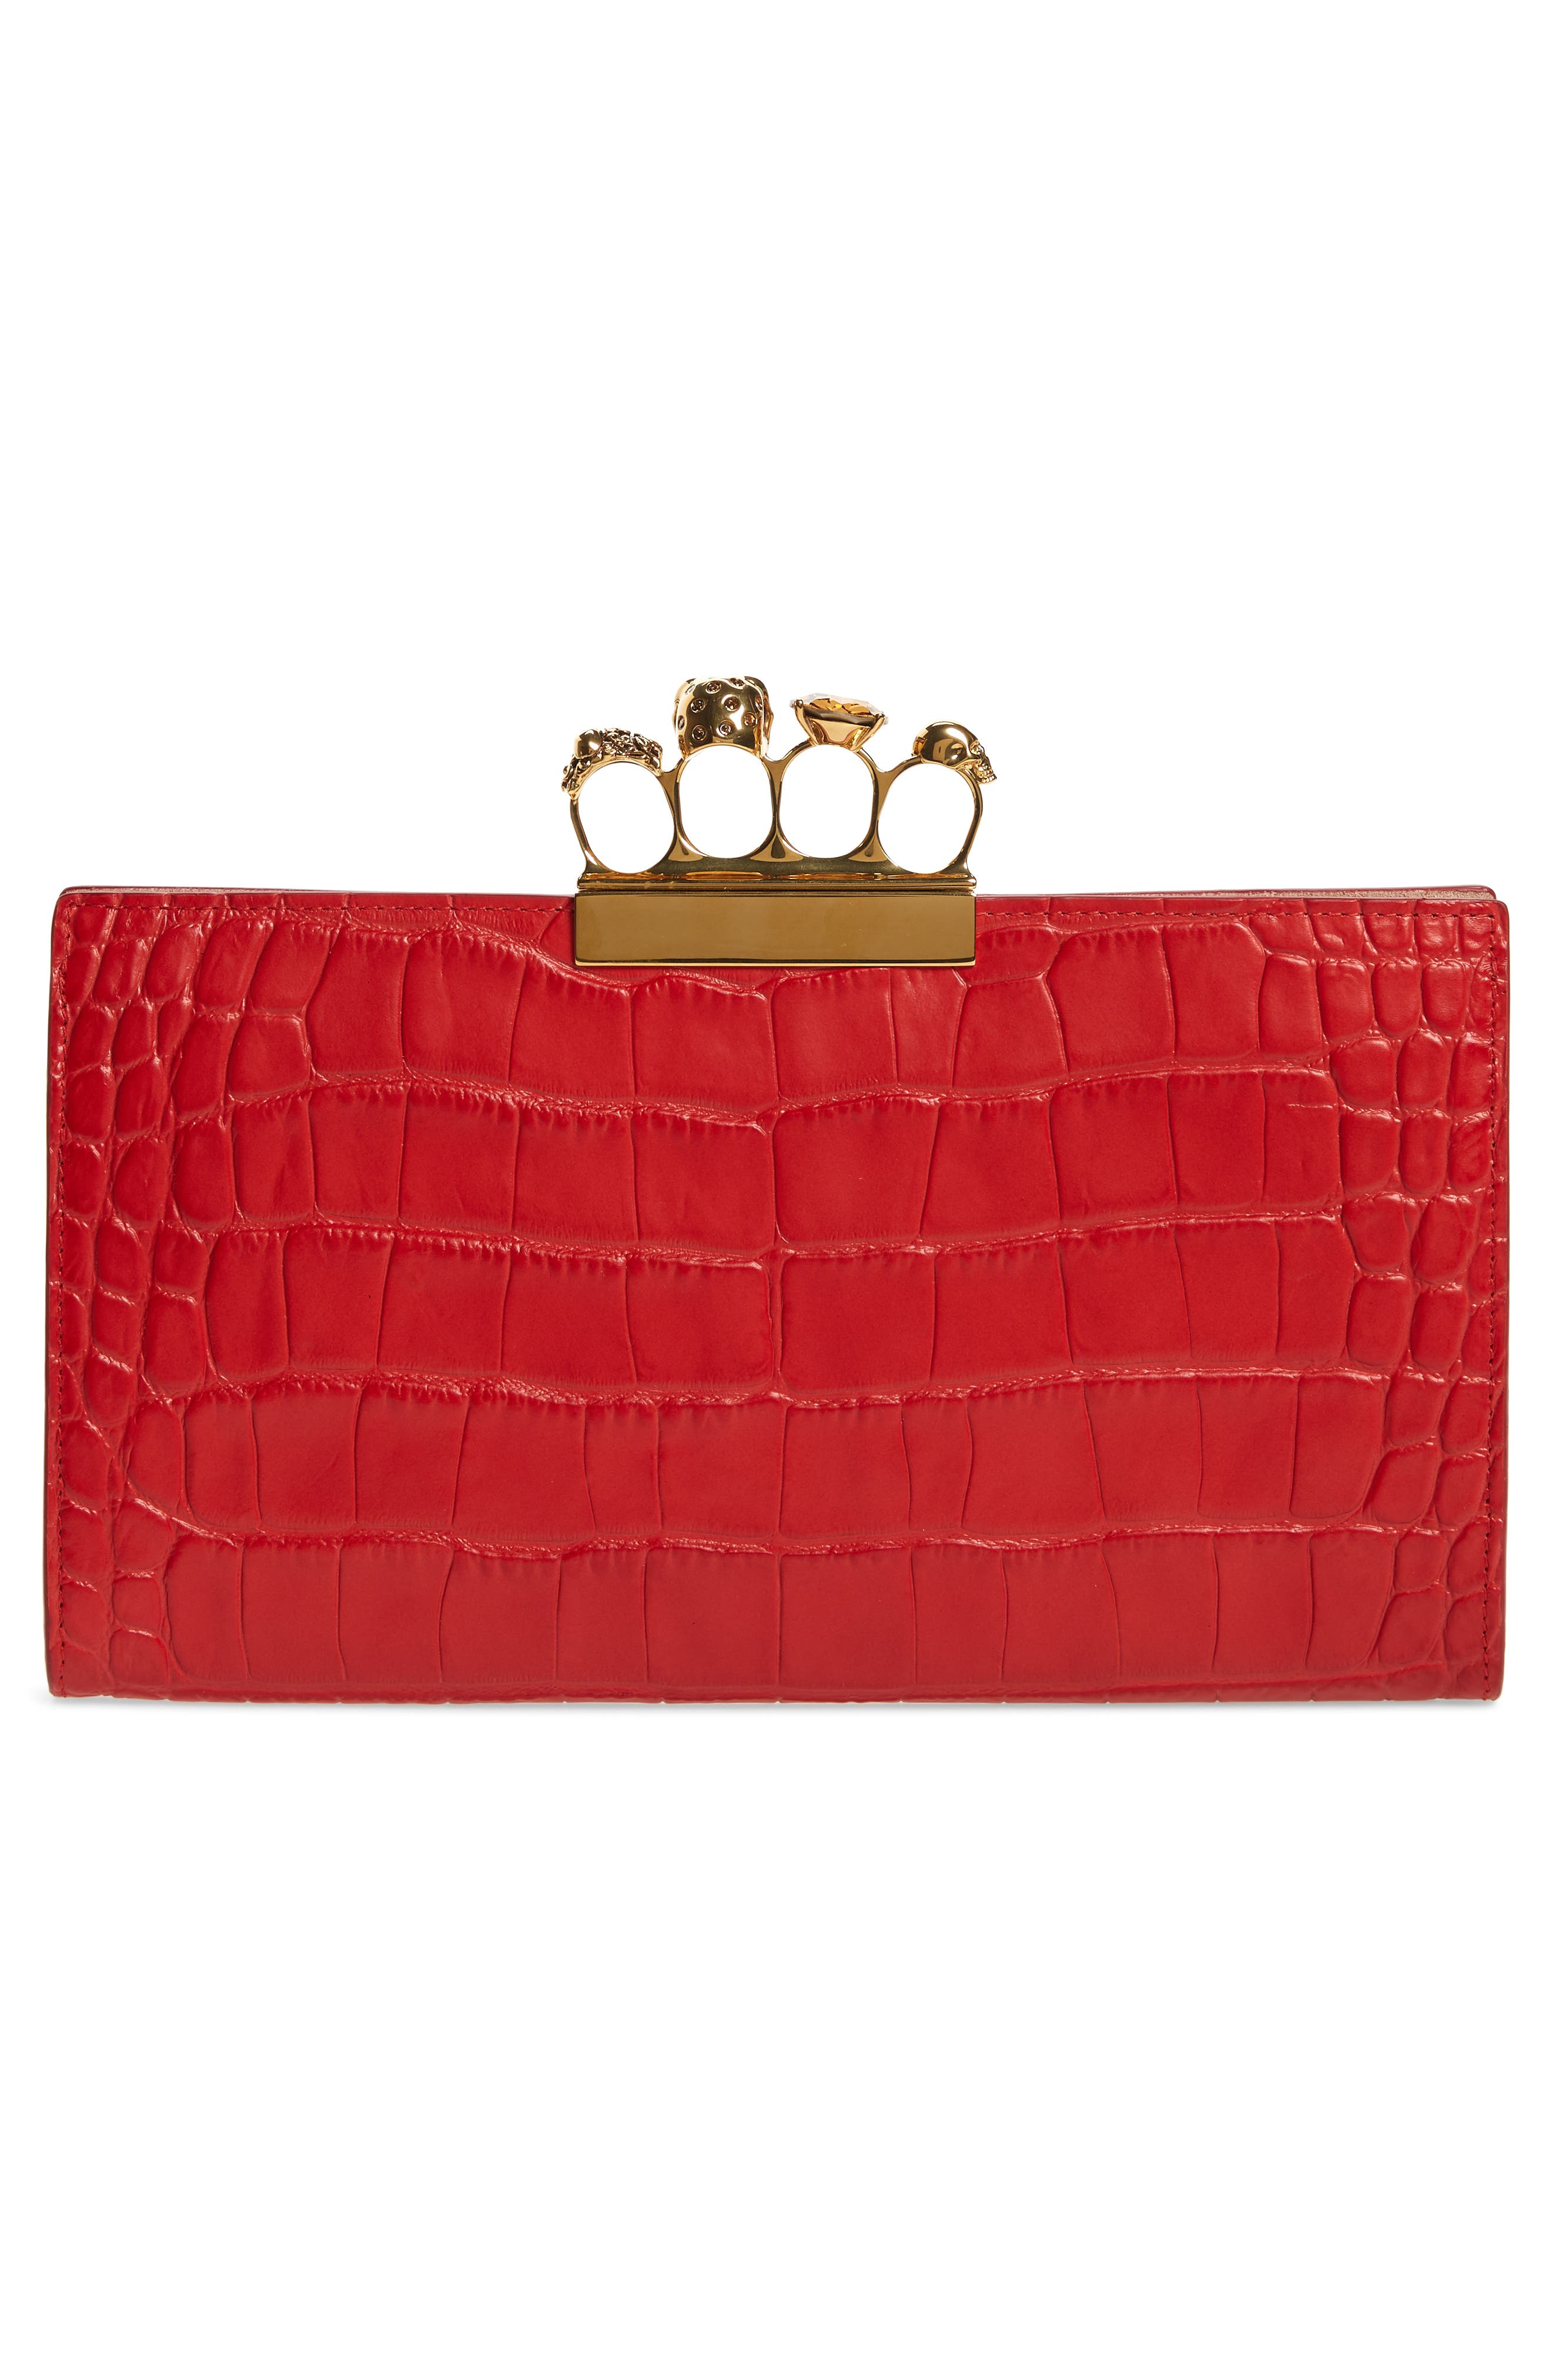 Croc Embossed Leather Knuckle Clutch,                             Alternate thumbnail 3, color,                             SCARLET RED